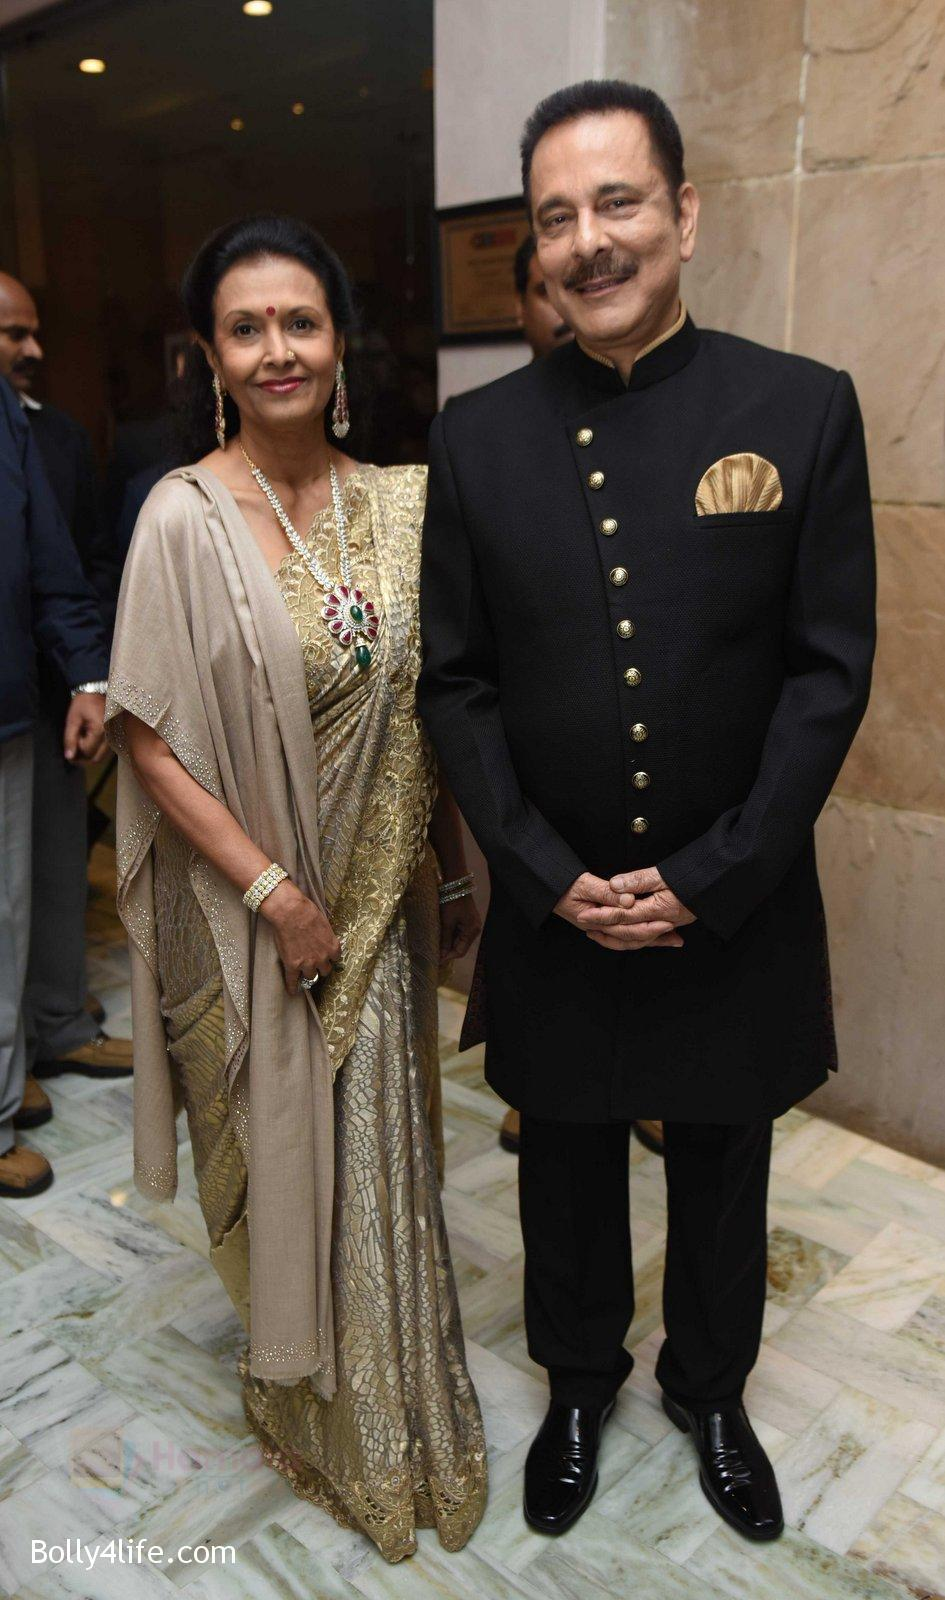 Subrat-Roy-with-wife-at-Yuvraj-Singh-and-Hazel-Keech-Wedding-Reception-on-7th-Dec-2016.jpg